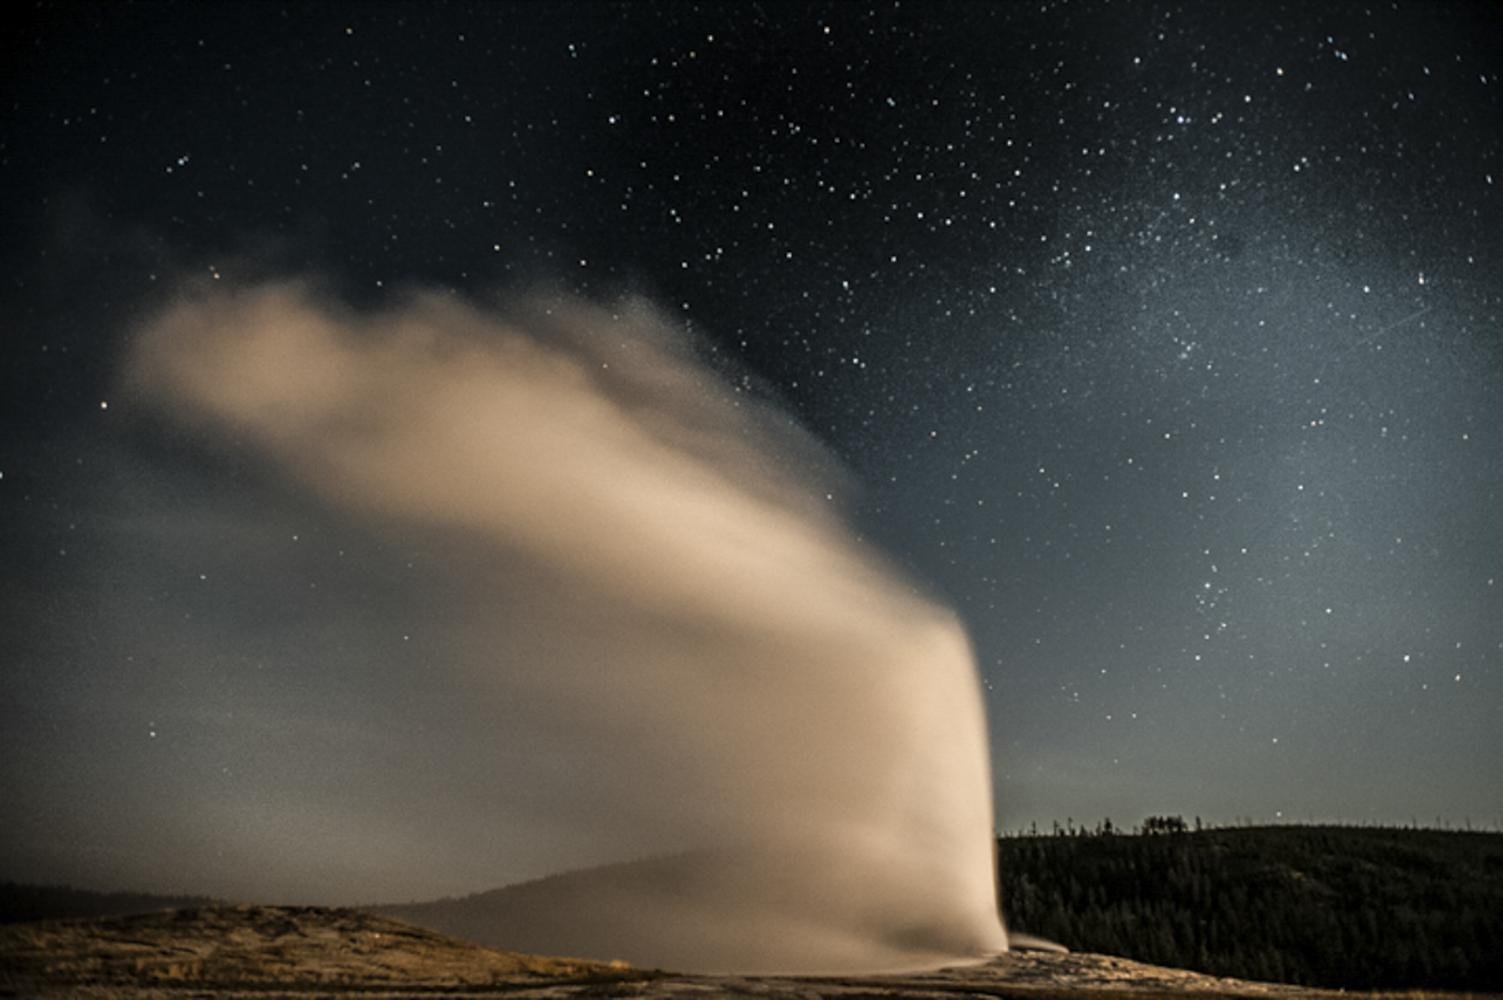 Old Faithful Geyser after dark in Yellowstone National Park.